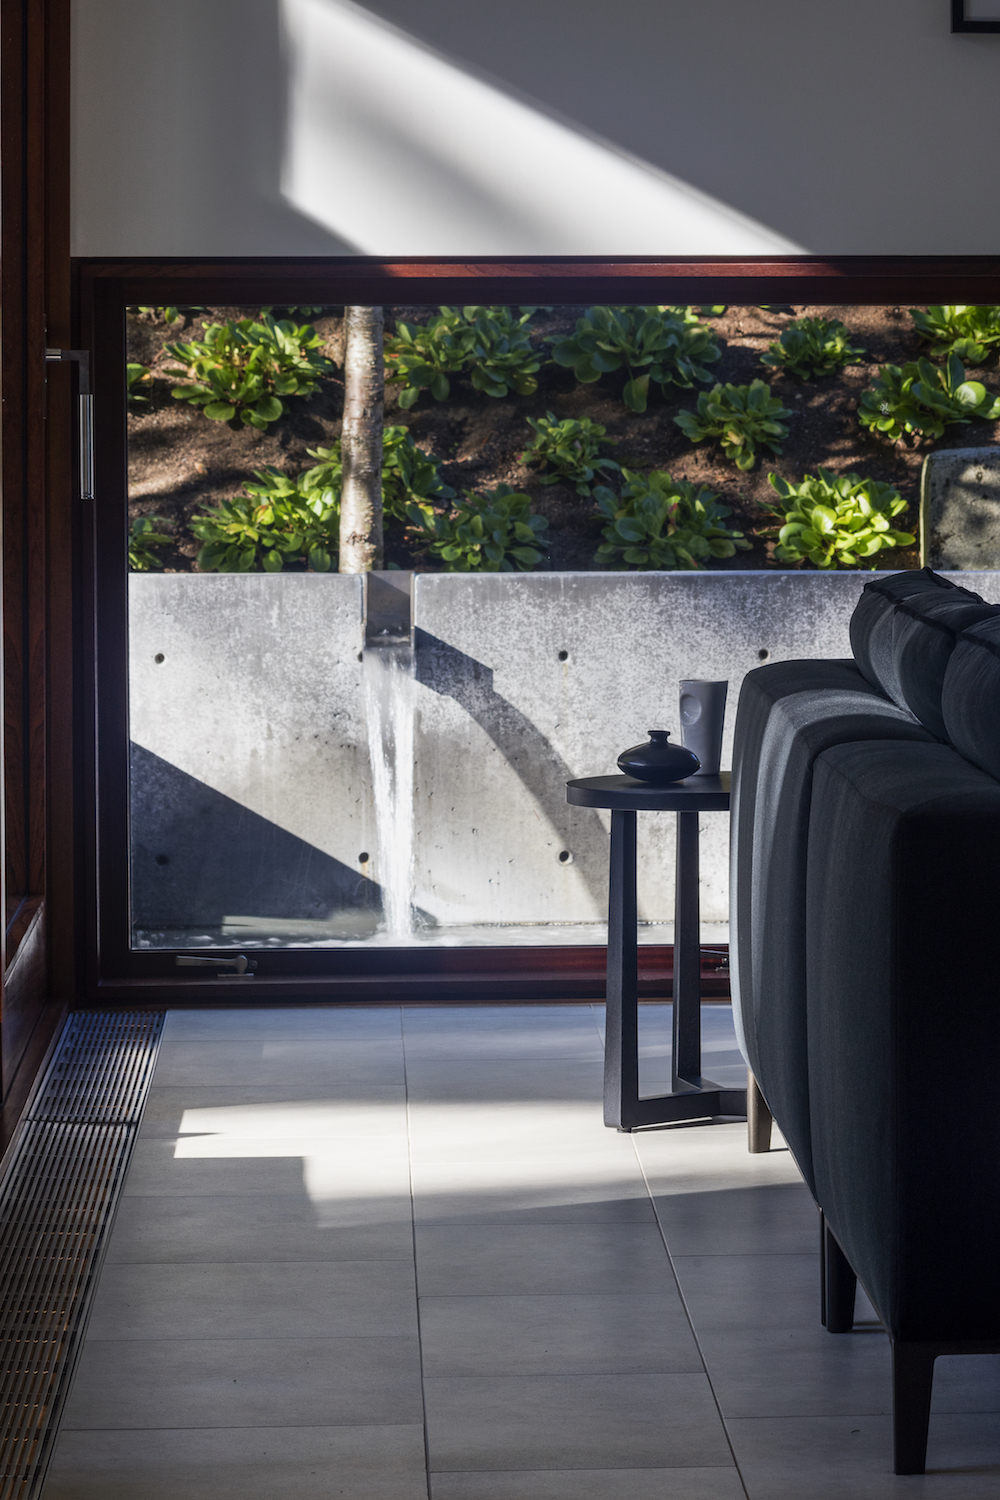 Living room and fountain details. Bellevue, Washington. Architecture by David Coleman Architecture. Interior design by Elizabeth Stretch for Stretch Design. Photography by Paul Warchol. From the book  Your Creative Haven  by Donald M. Rattner (2019).